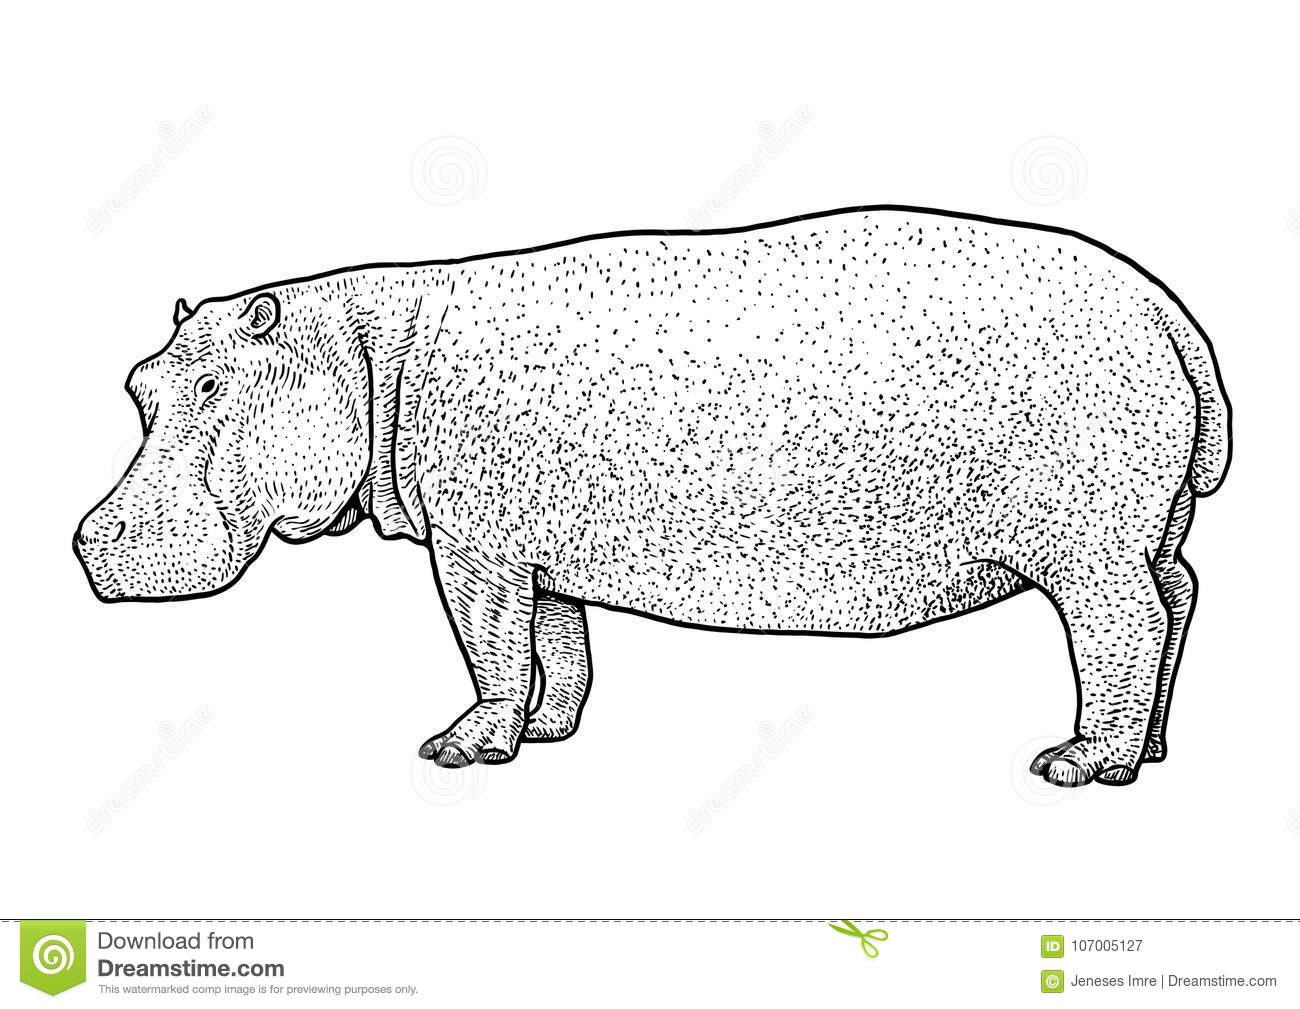 Illustration D Hippopotame Dessin Gravure Encre Schema Vecteur Illustration De Vecteur Illustration Du Dessin Illustration 107005127